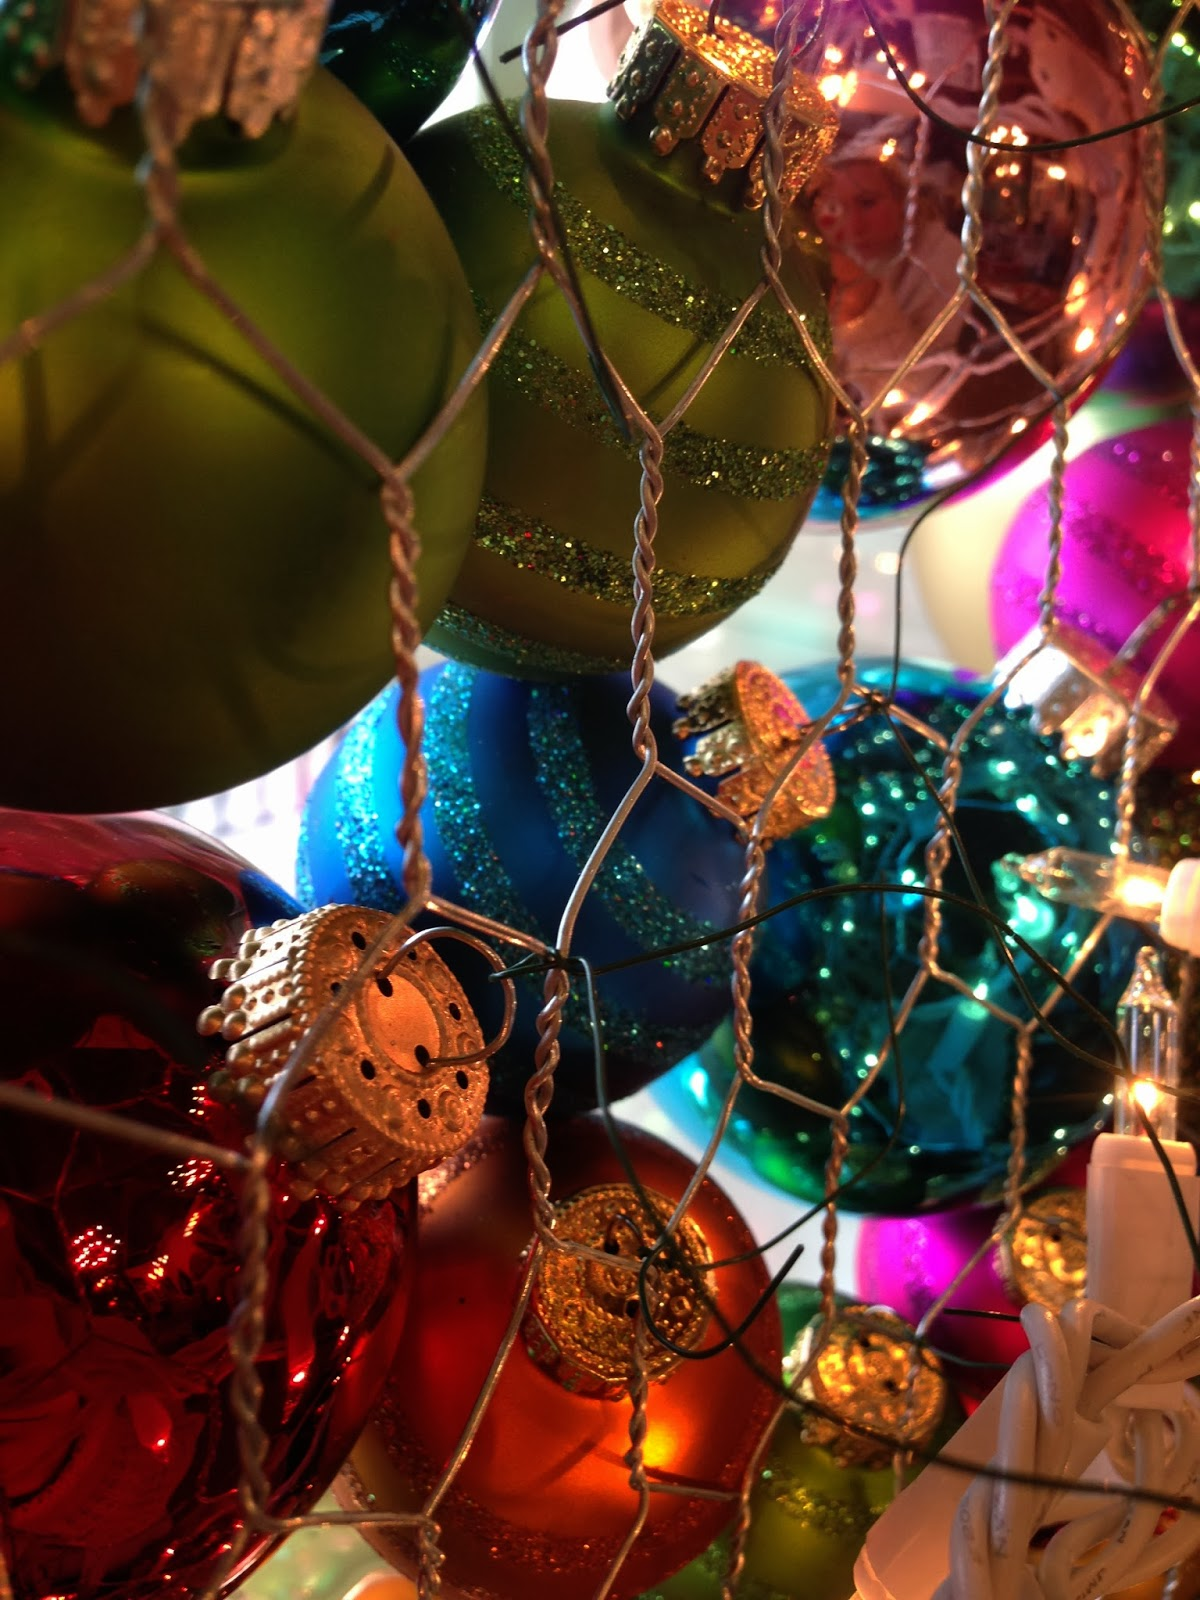 Chicken christmas ornaments - We Had Three Strands Of White Christmas Lights And Started At The Top Zig Zagging One Way We Used Another Strand Zig Zagging The Opposite Way